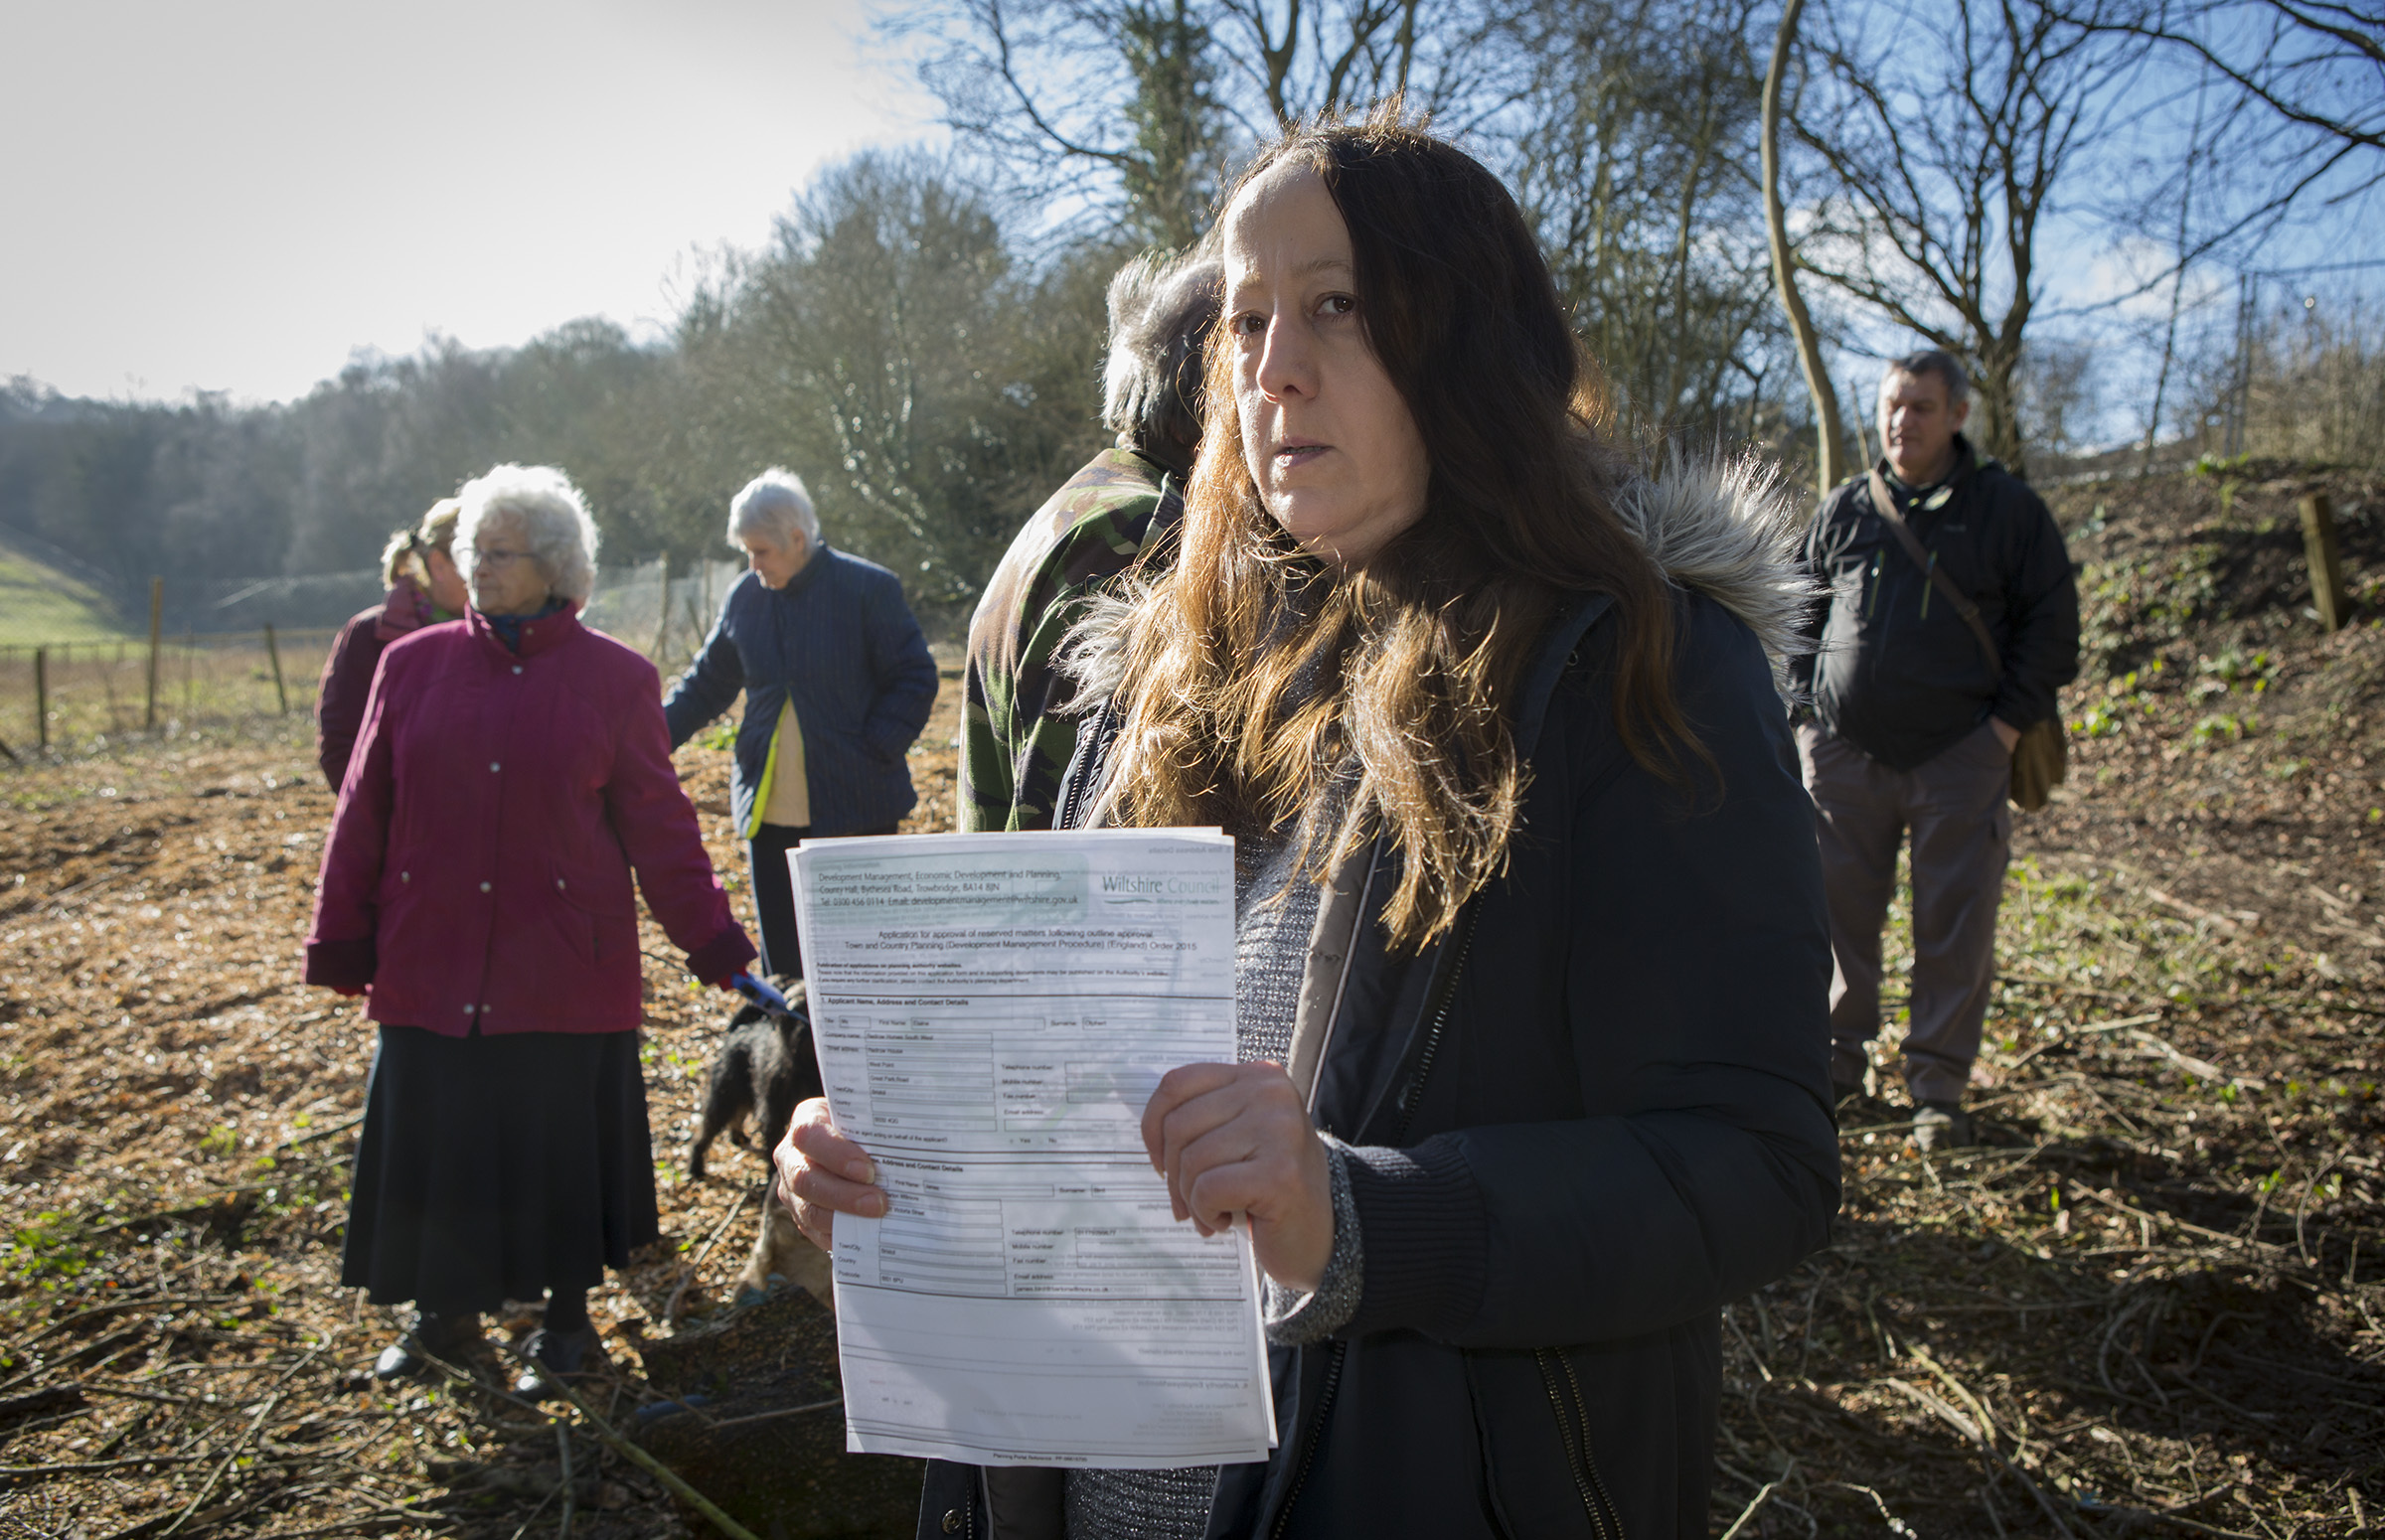 Sara Daw and other residents on the land where trees have been felled, with correspondence from Wiltshire Council                                                      Photo: Nicola Salt